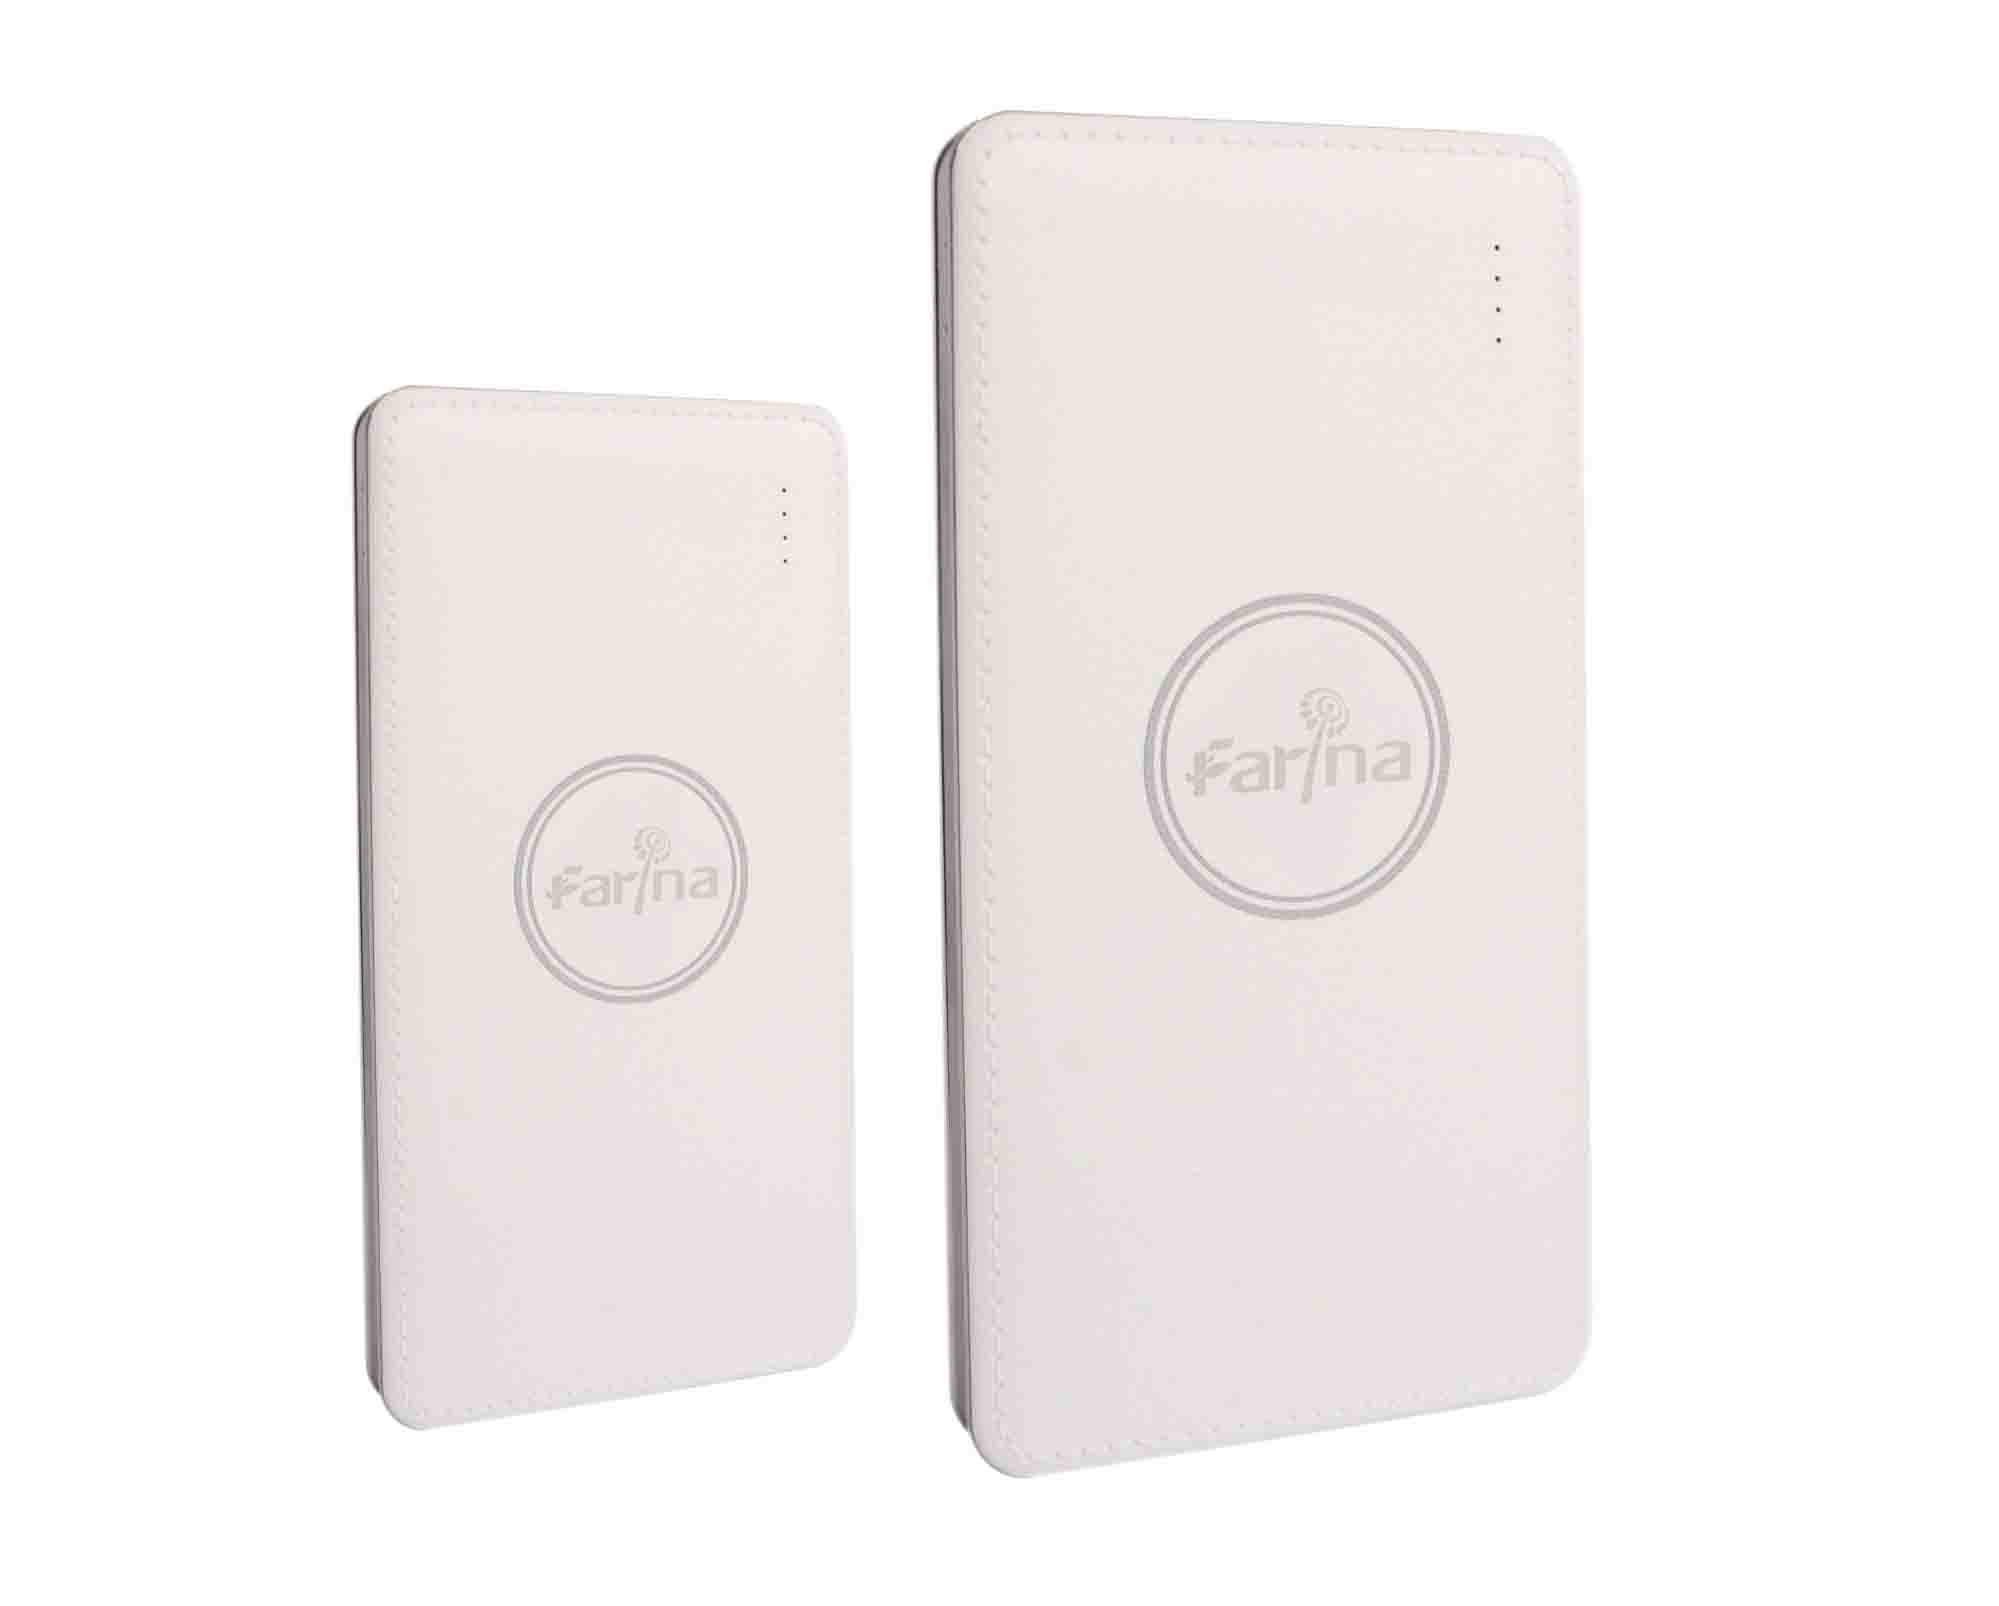 Wireless power bank, Sharing power bank